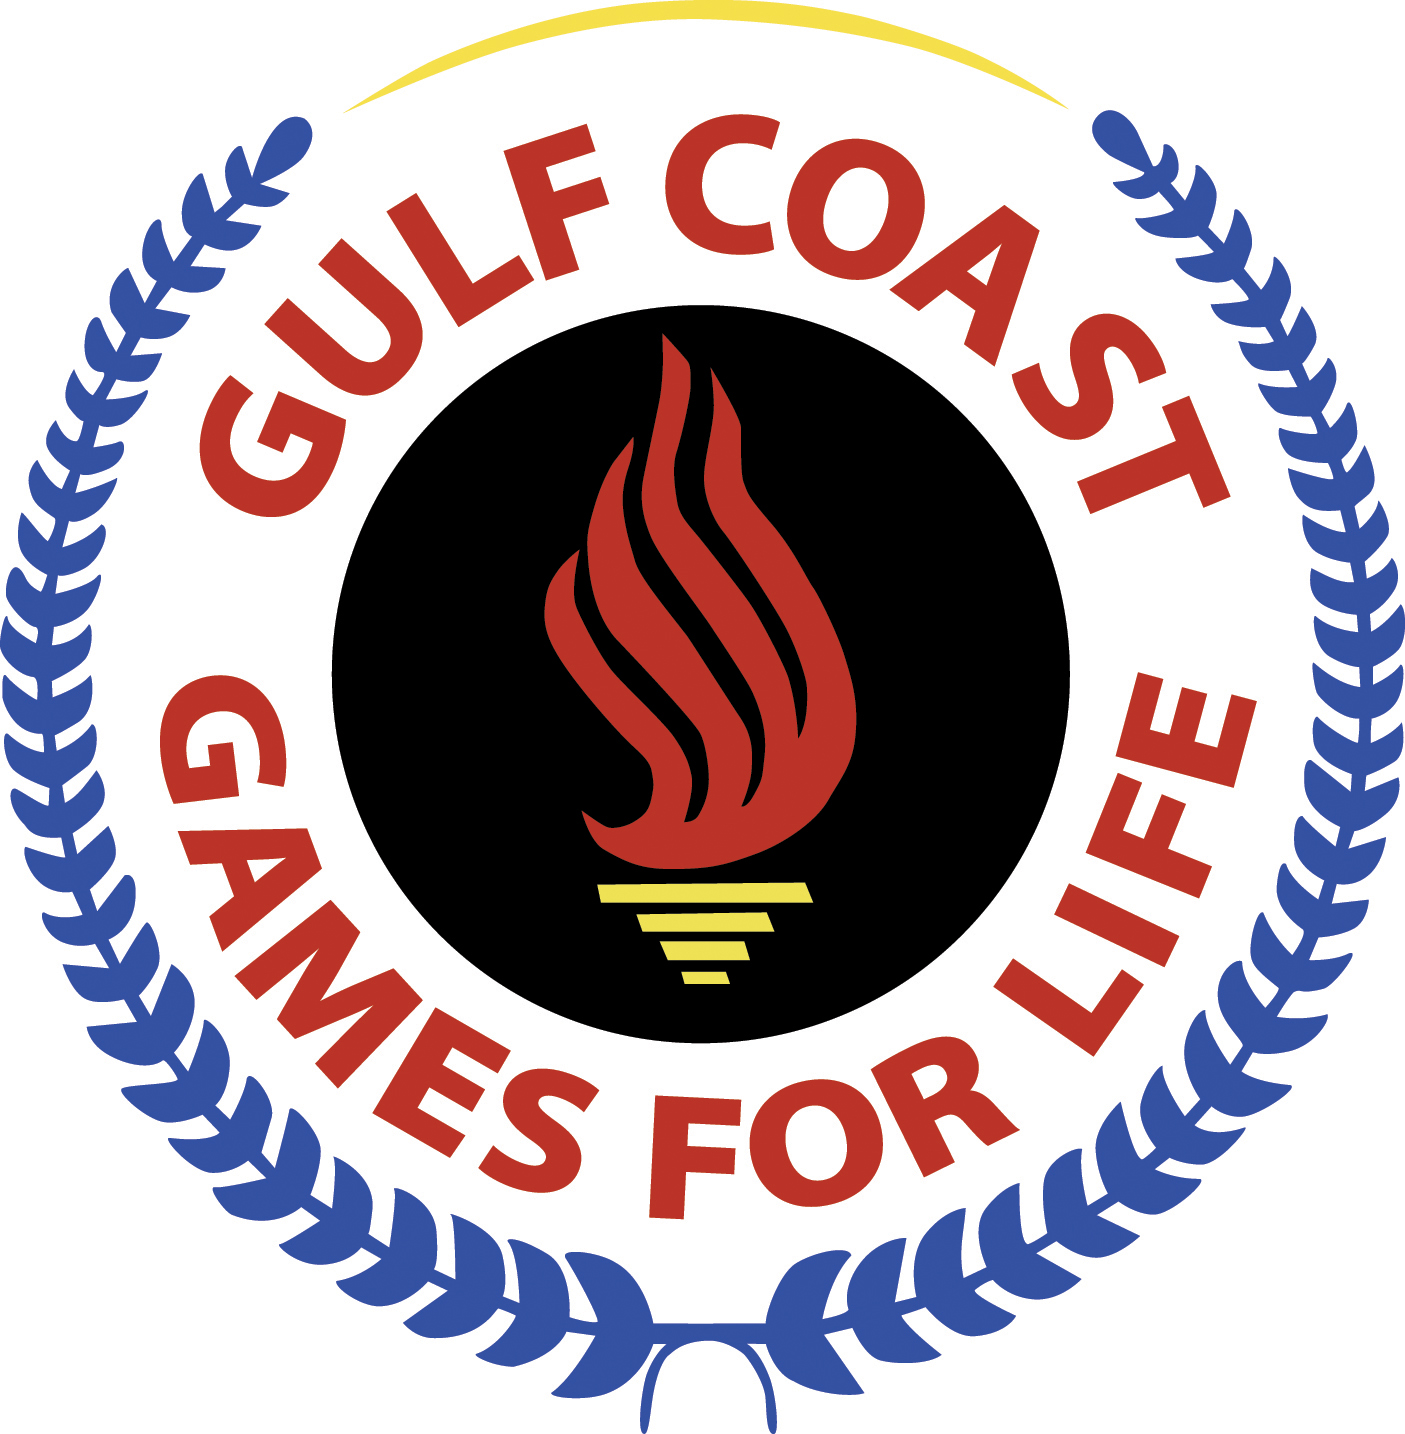 Gulf Coast Games For Life Logo